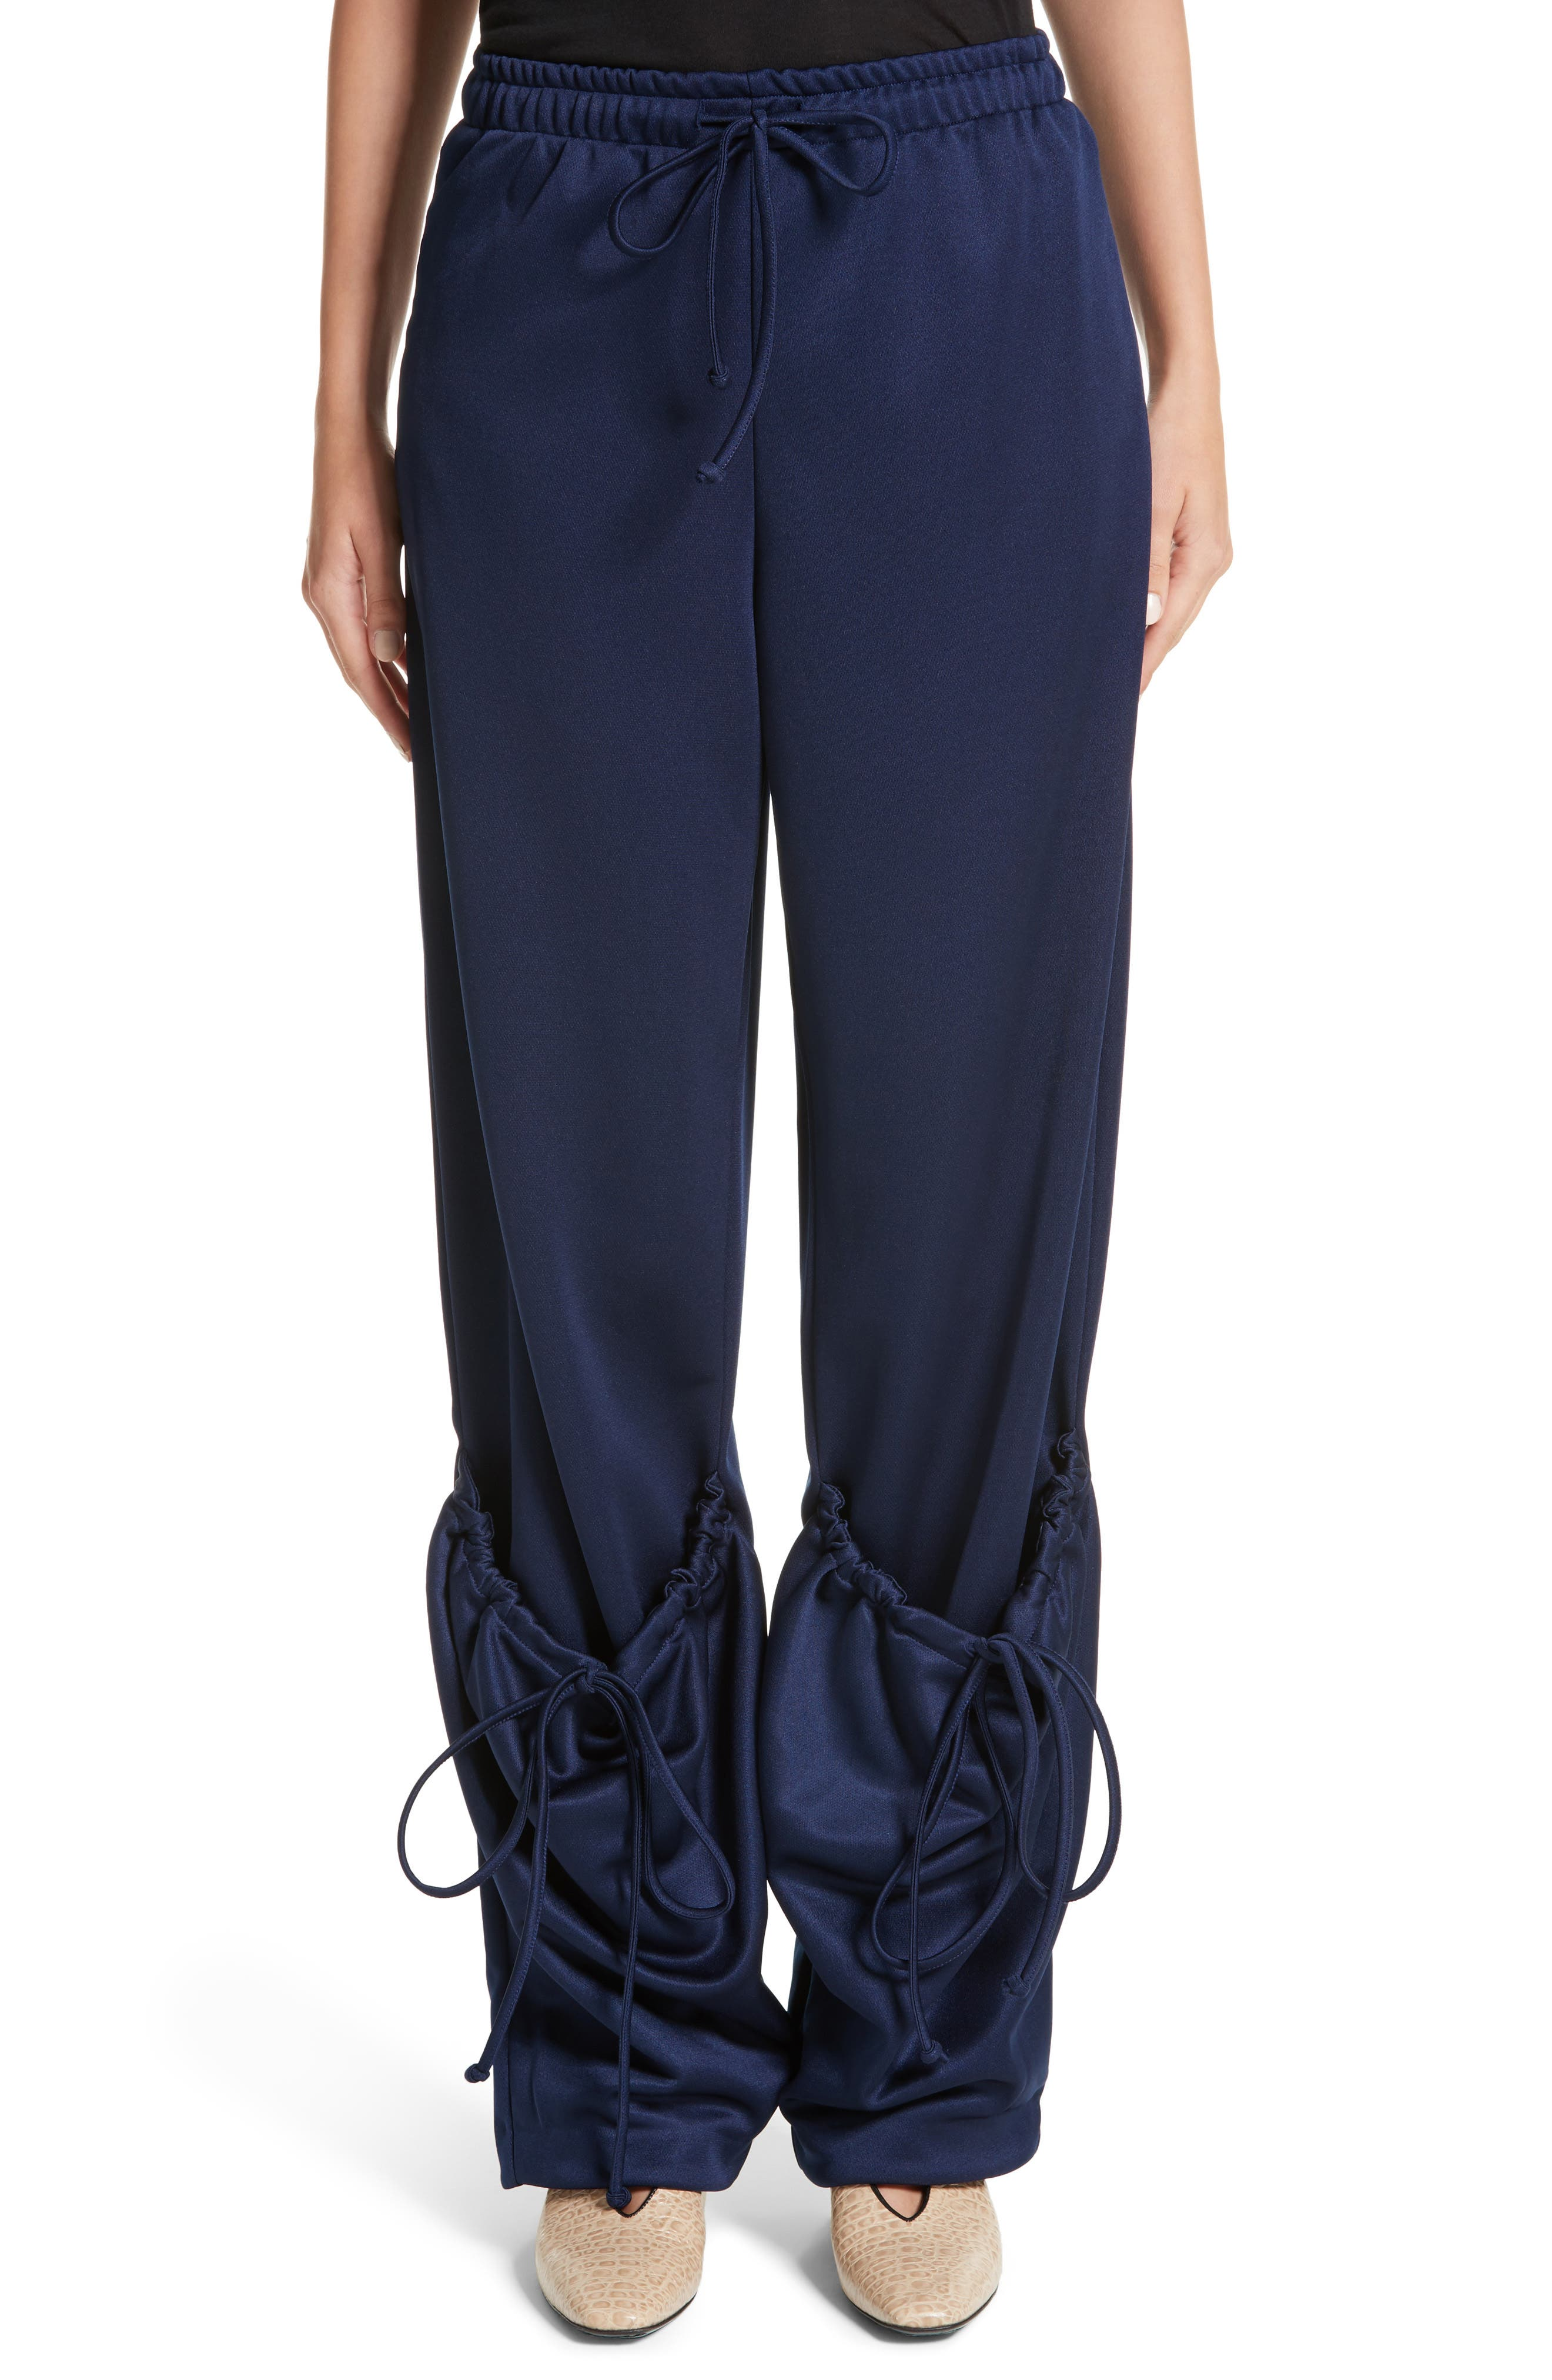 J.W.ANDERSON Jersey Pocket Hem Trousers,                         Main,                         color, Midnight Blue